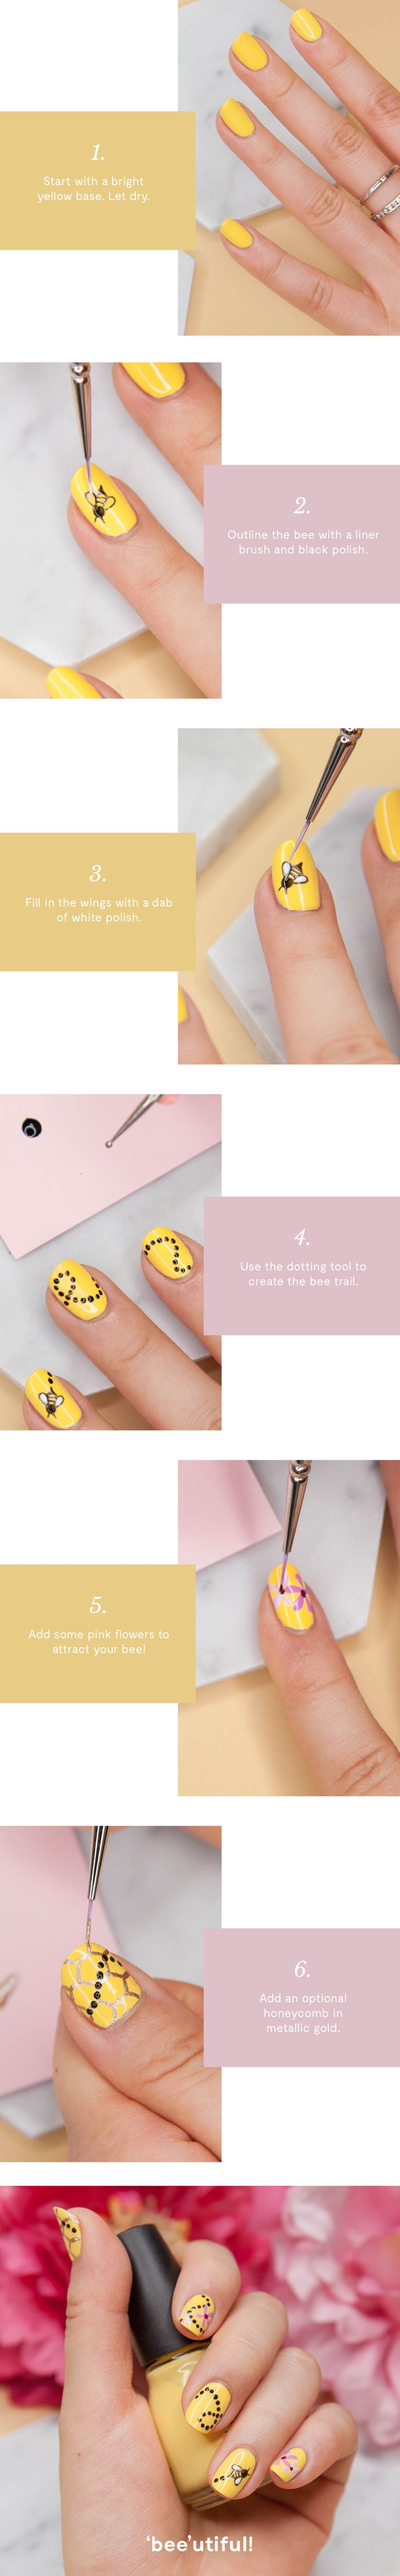 What's all the buzzz about? This DIY nail art, of course! It makes the perfect complement to any spring ensemble.